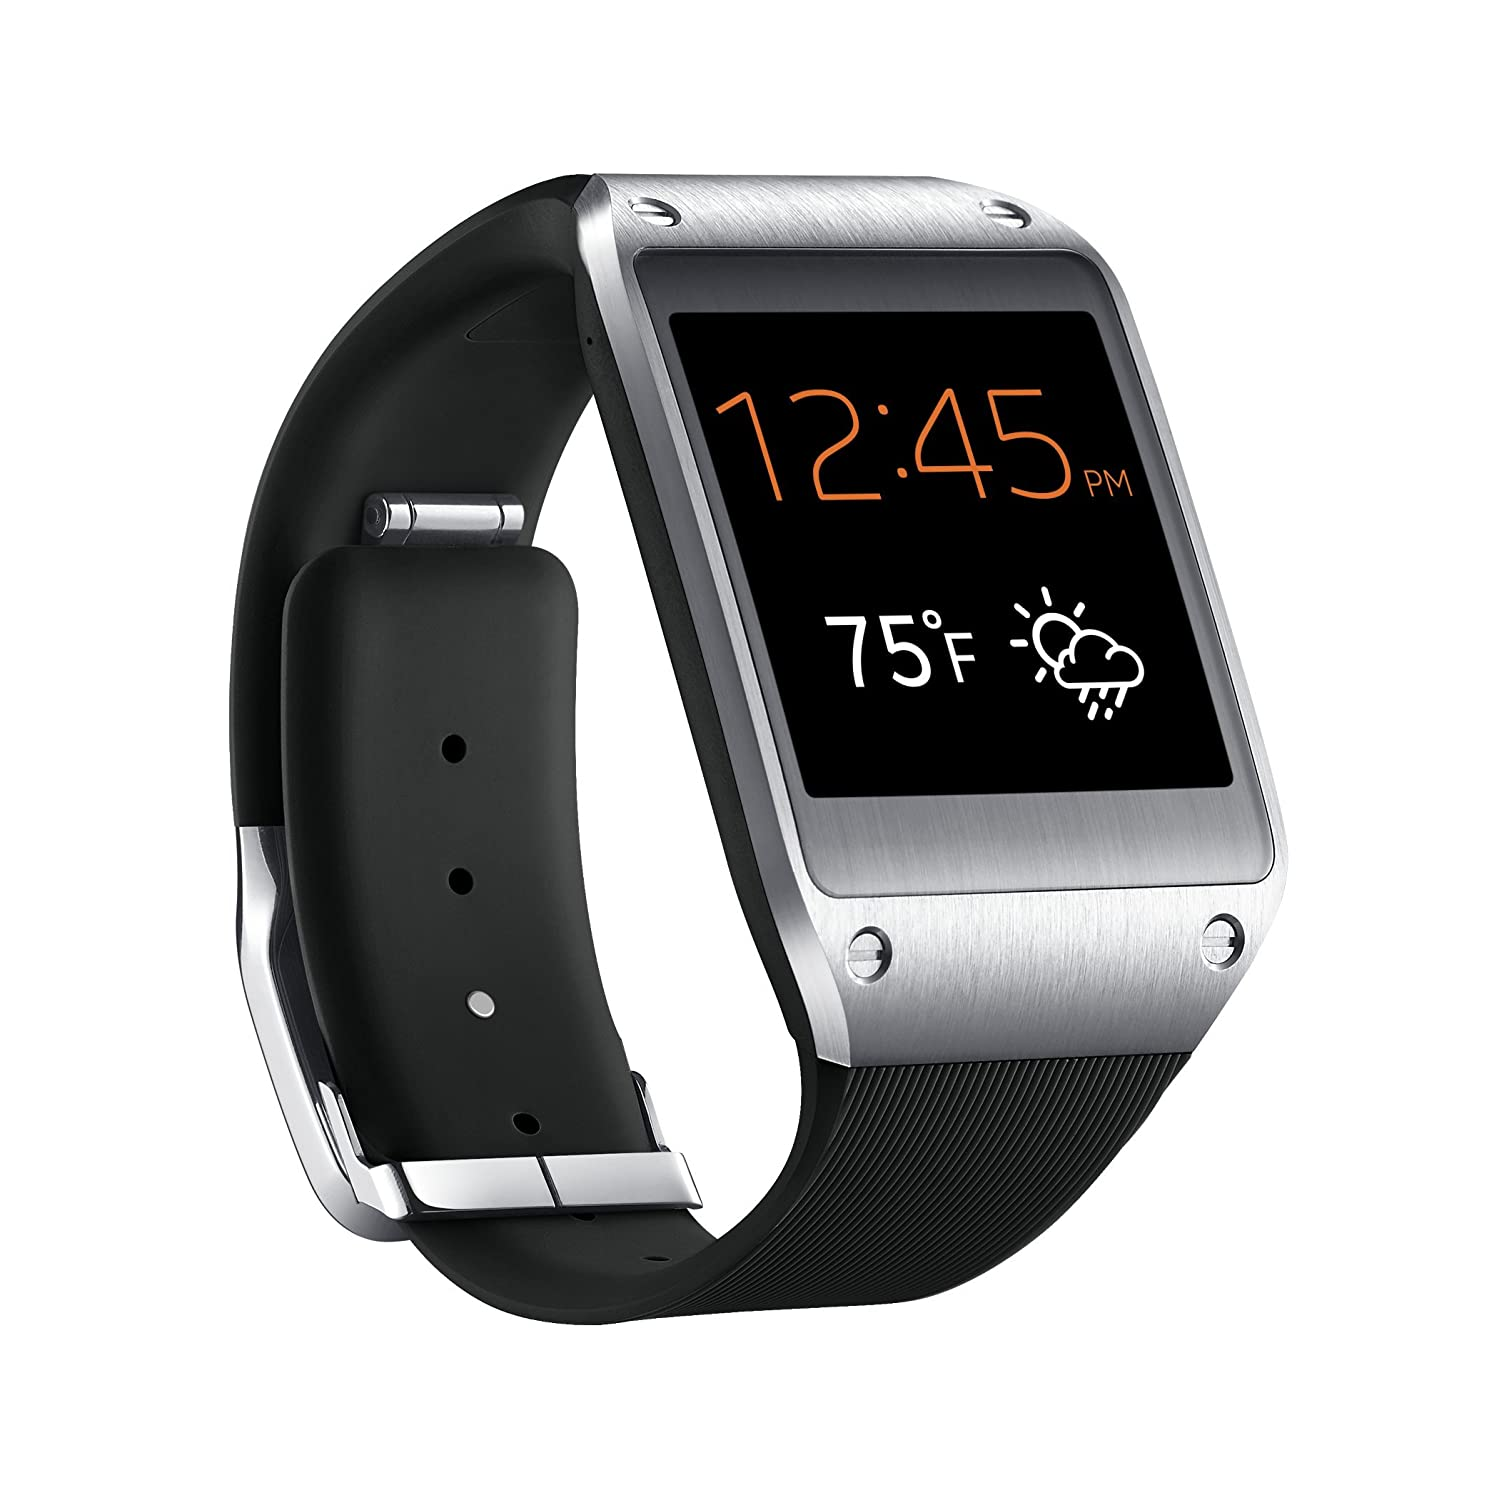 samsung smartwatch samsung galaxy gear smart price in pakistan samsung in pakistan at symbios pk